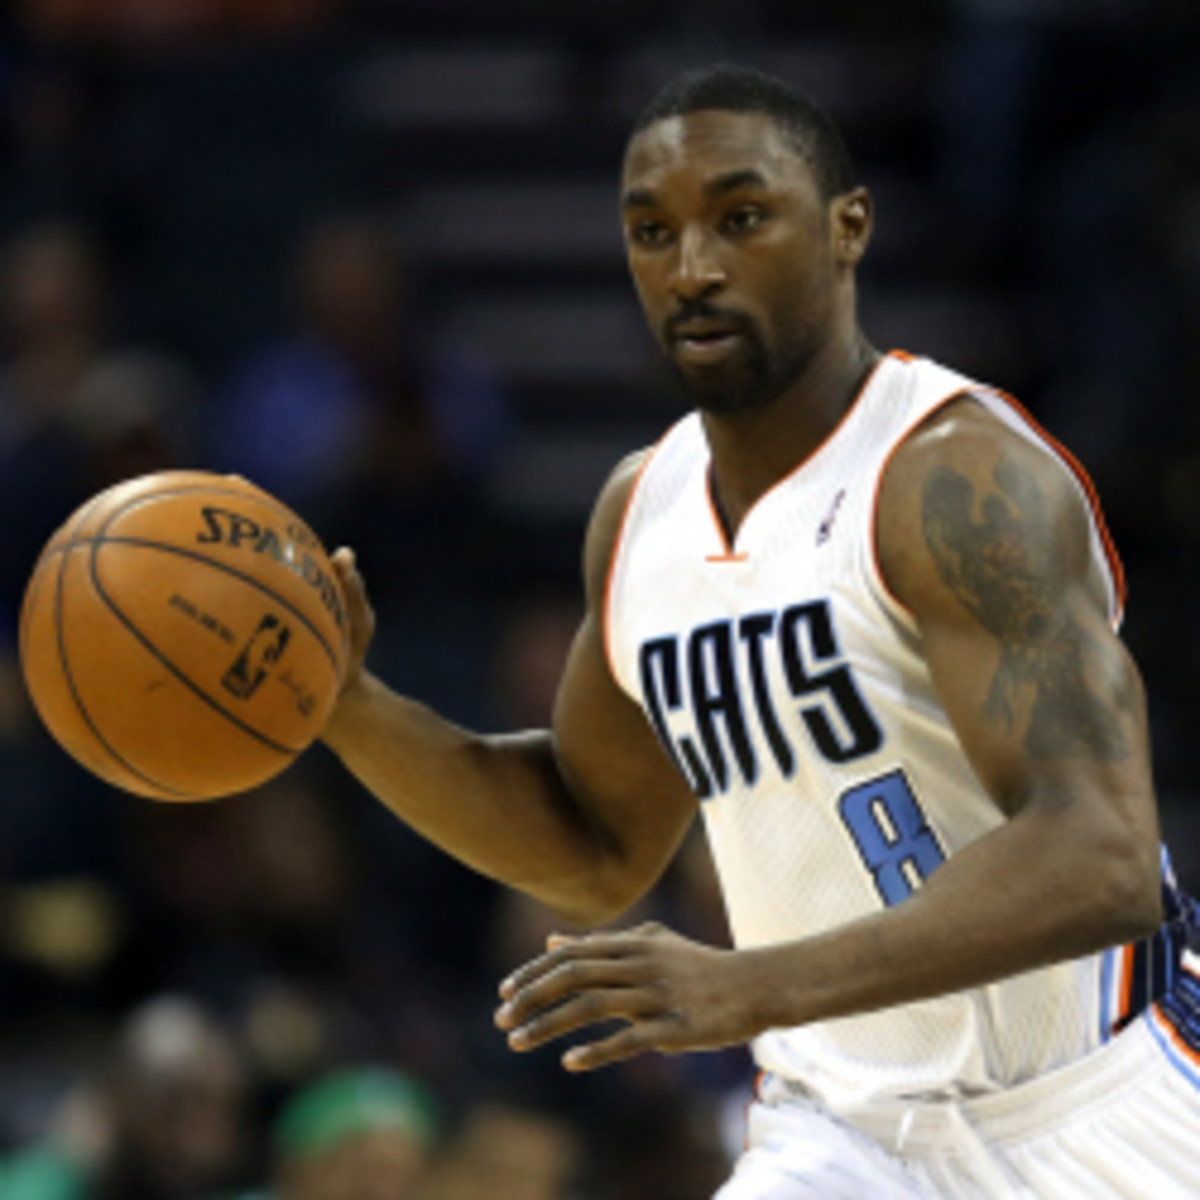 The Bobcats are reportedly more interested in trading Ben Gordon after the guard got into an argument with coach Mike Dunlap. (Streeter Lecka/Getty Images)